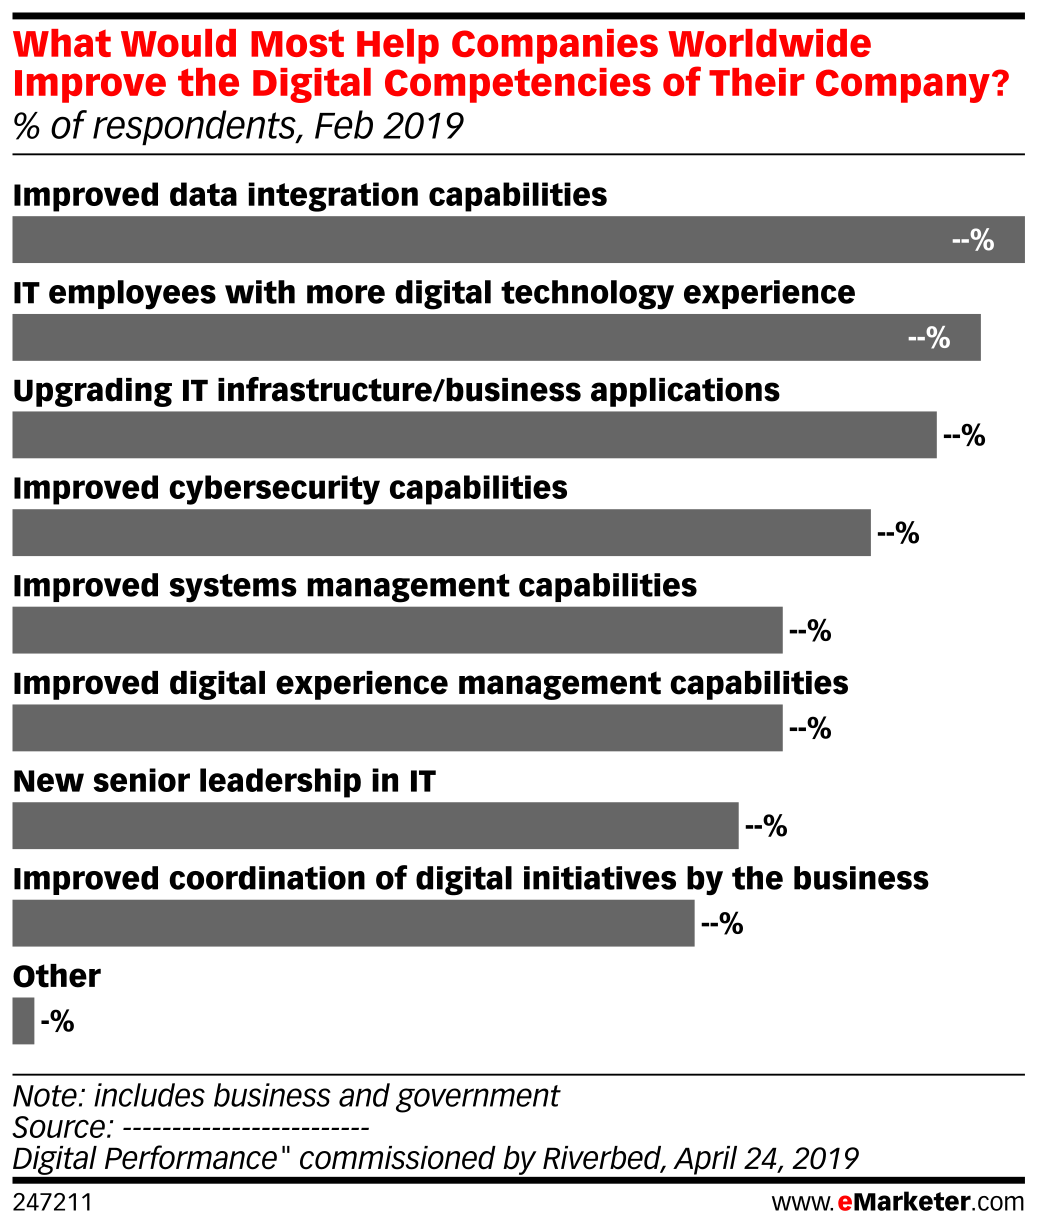 What Would Most Help Companies Worldwide Improve the Digital Competencies of Their Company? (% of respondents, Feb 2019)